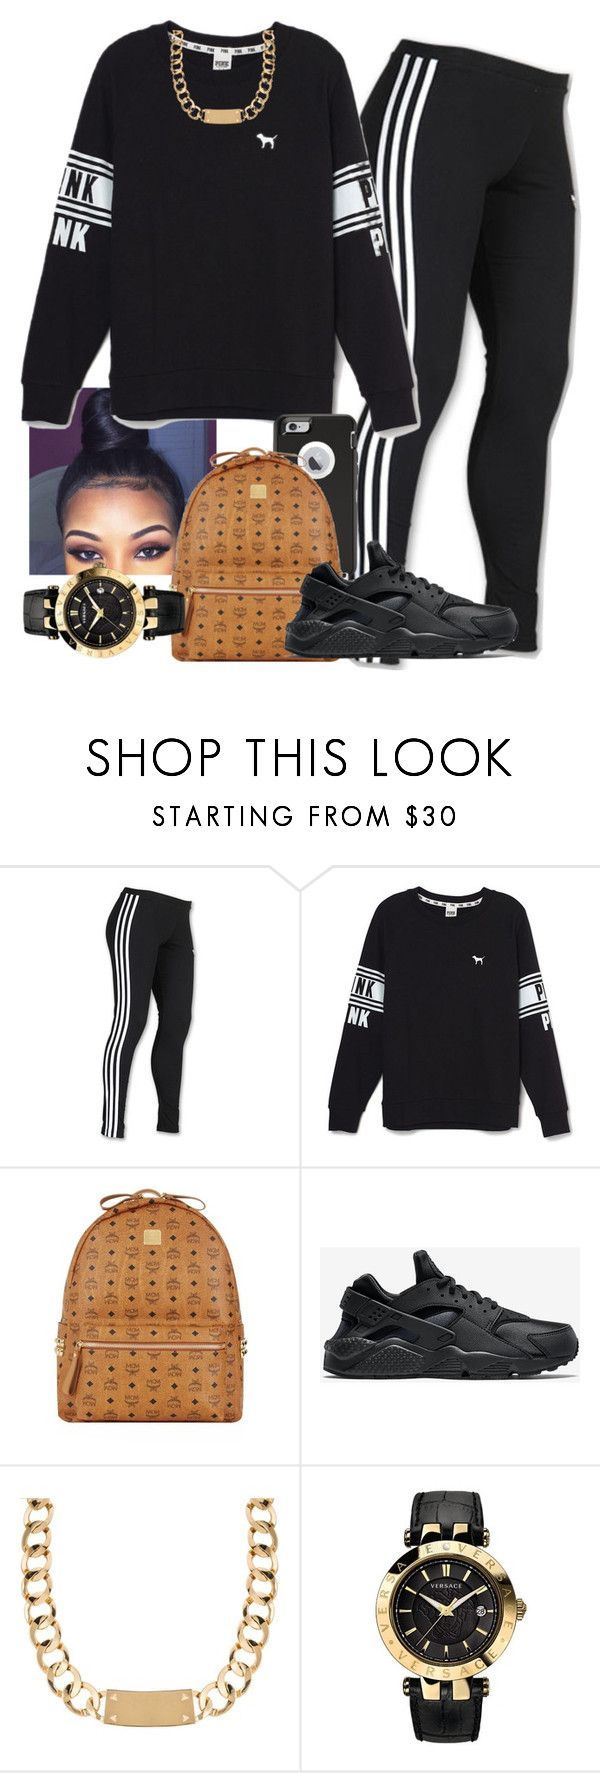 """""""Untitled #192"""" by khanyajane on Polyvore featuring adidas, Victoria's Secret, OtterBox, MCM, NIKE, House of Harlow 1960 and Versace"""